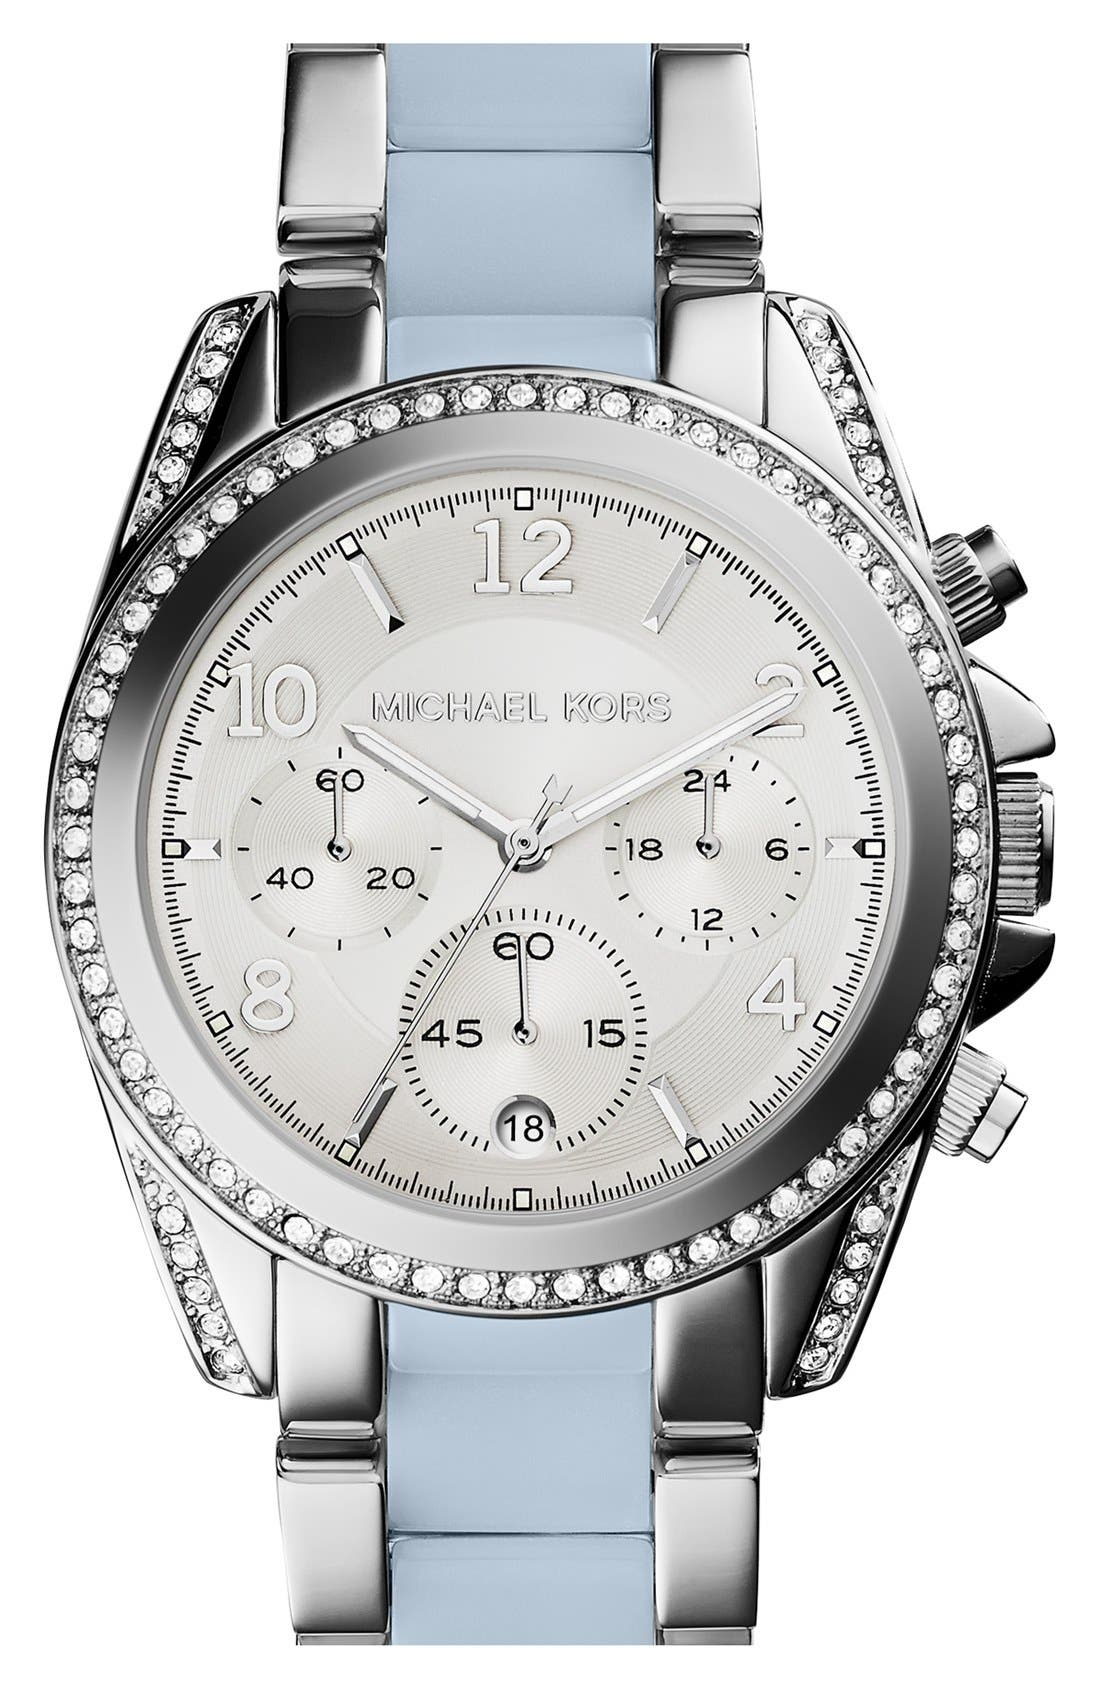 MICHAEL KORS, 'Blair' Crystal Bezel Two-Tone Bracelet Watch, 39mm, Main thumbnail 1, color, 040